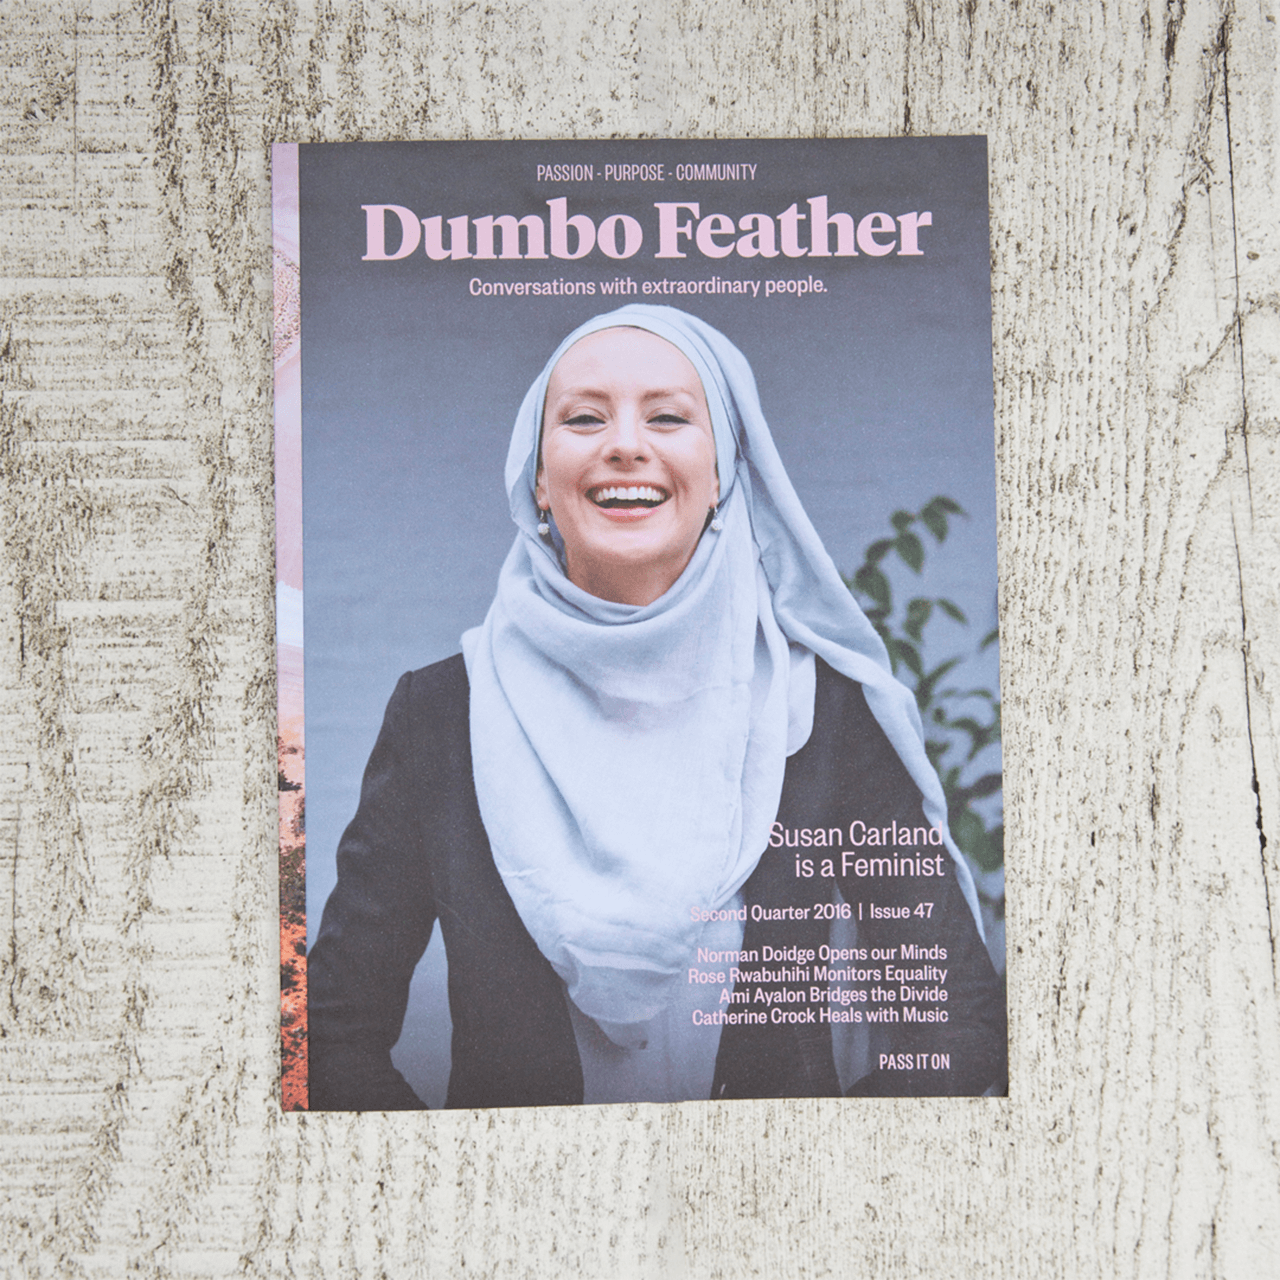 Cover of Dumbo Feather magazine issue 47